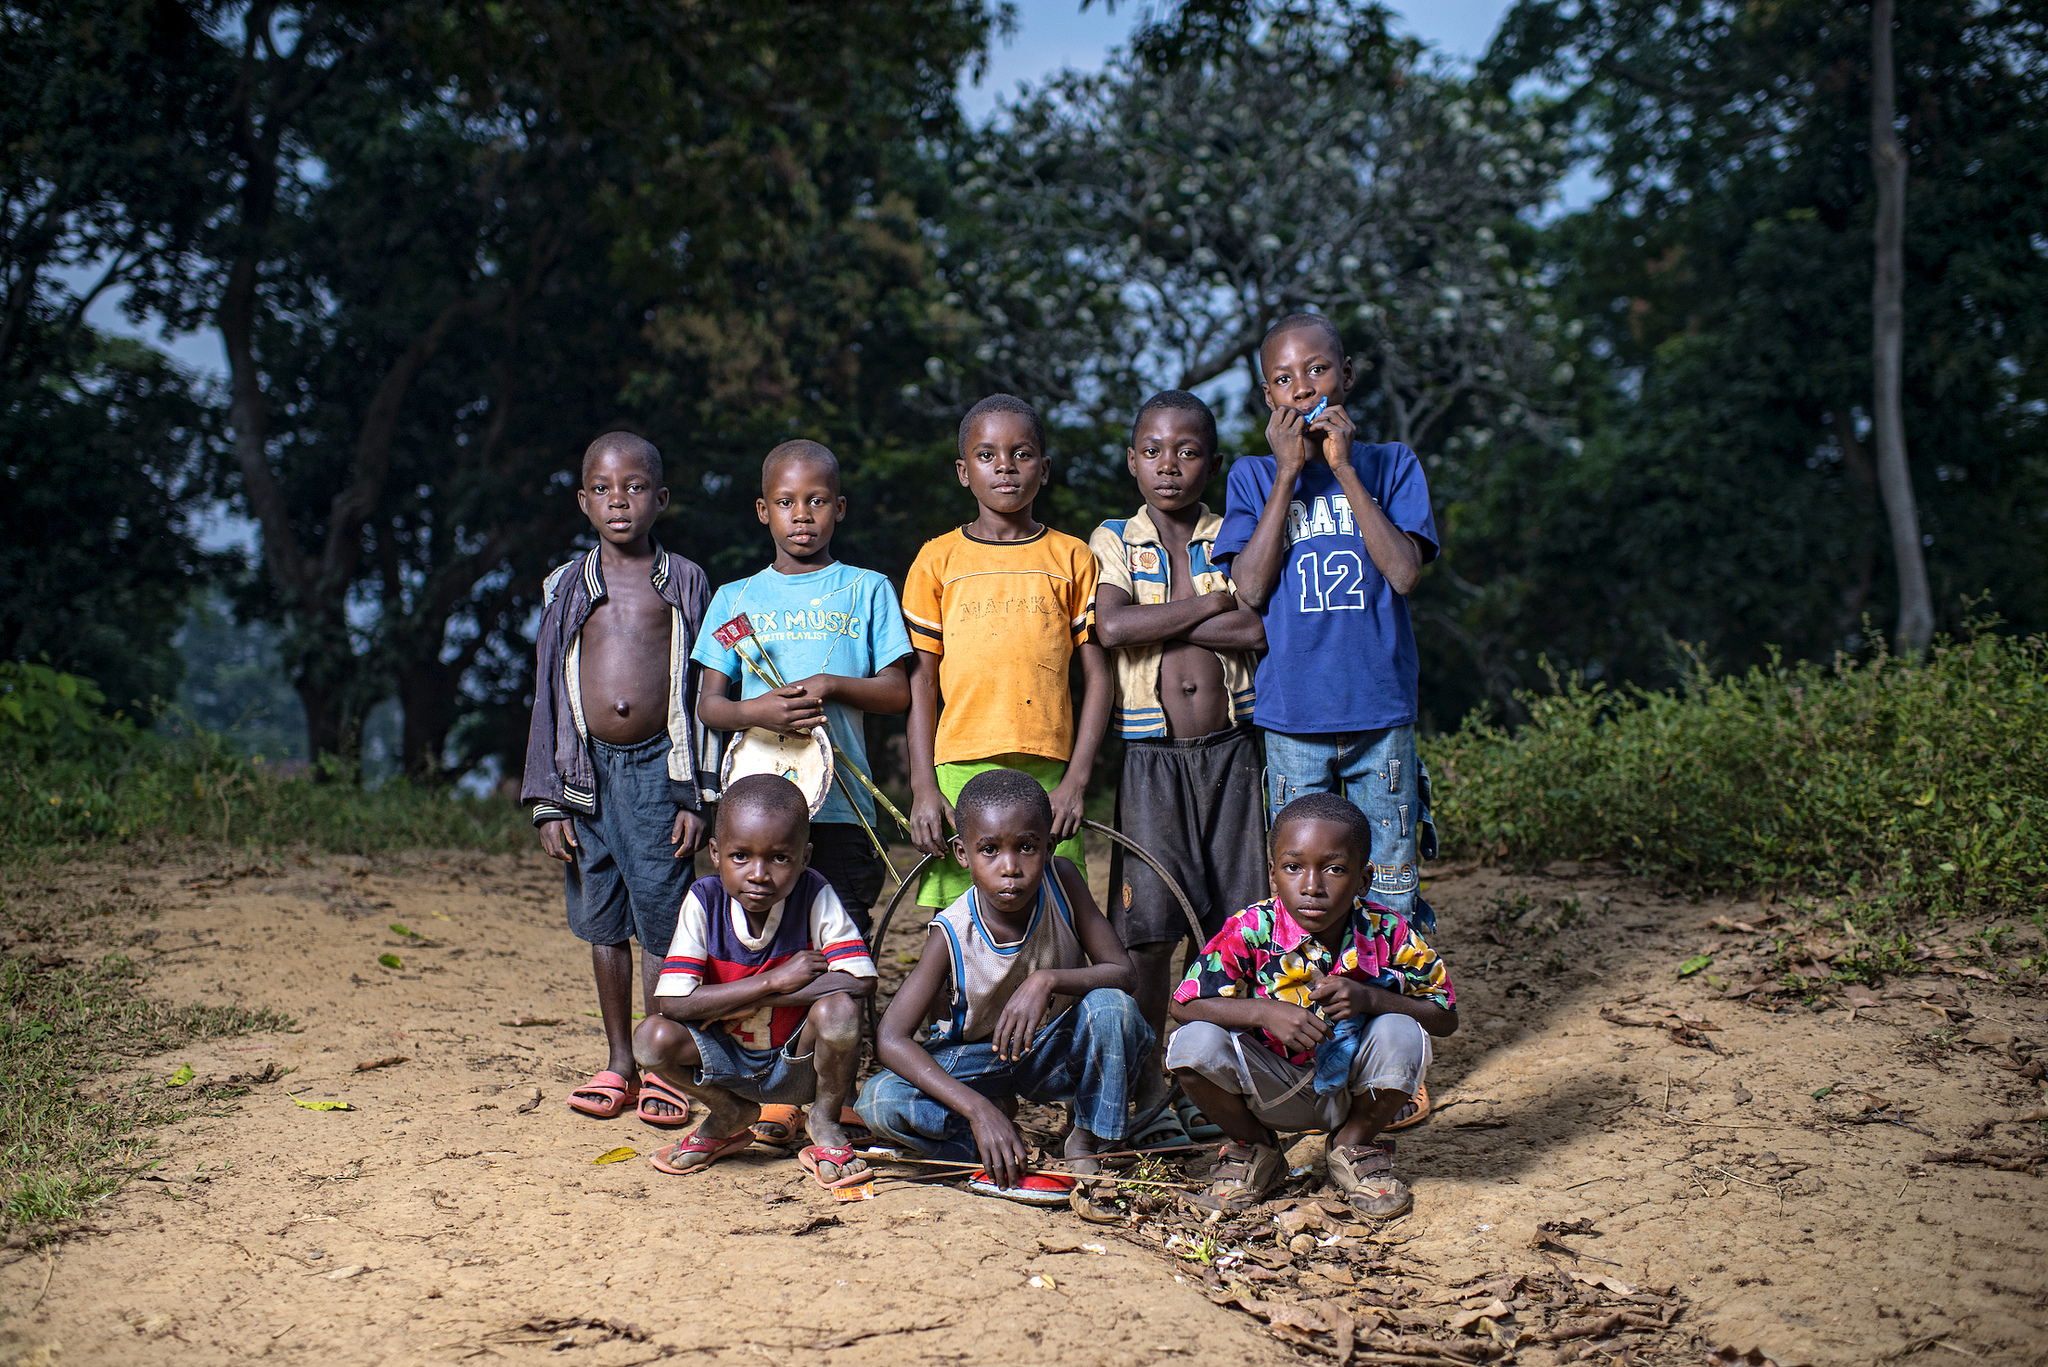 Catalyze a movement to bring hope to the Congo.